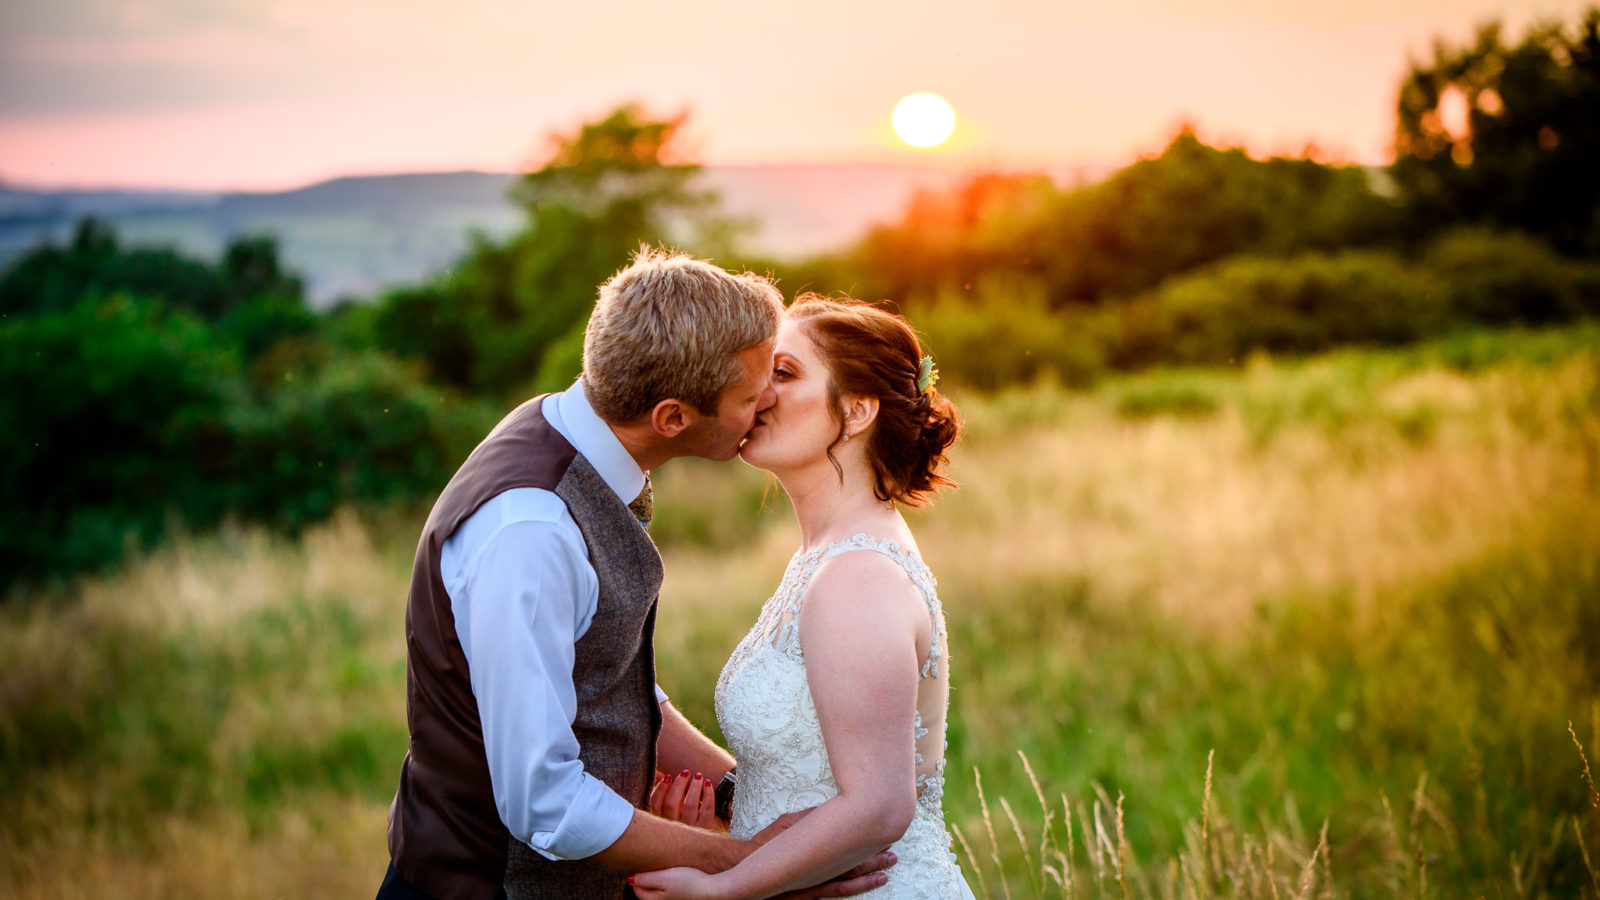 A bride and groom kissing at sunset at The River Cottage Wedding Venue in Axminster, Devon on their wedding day.